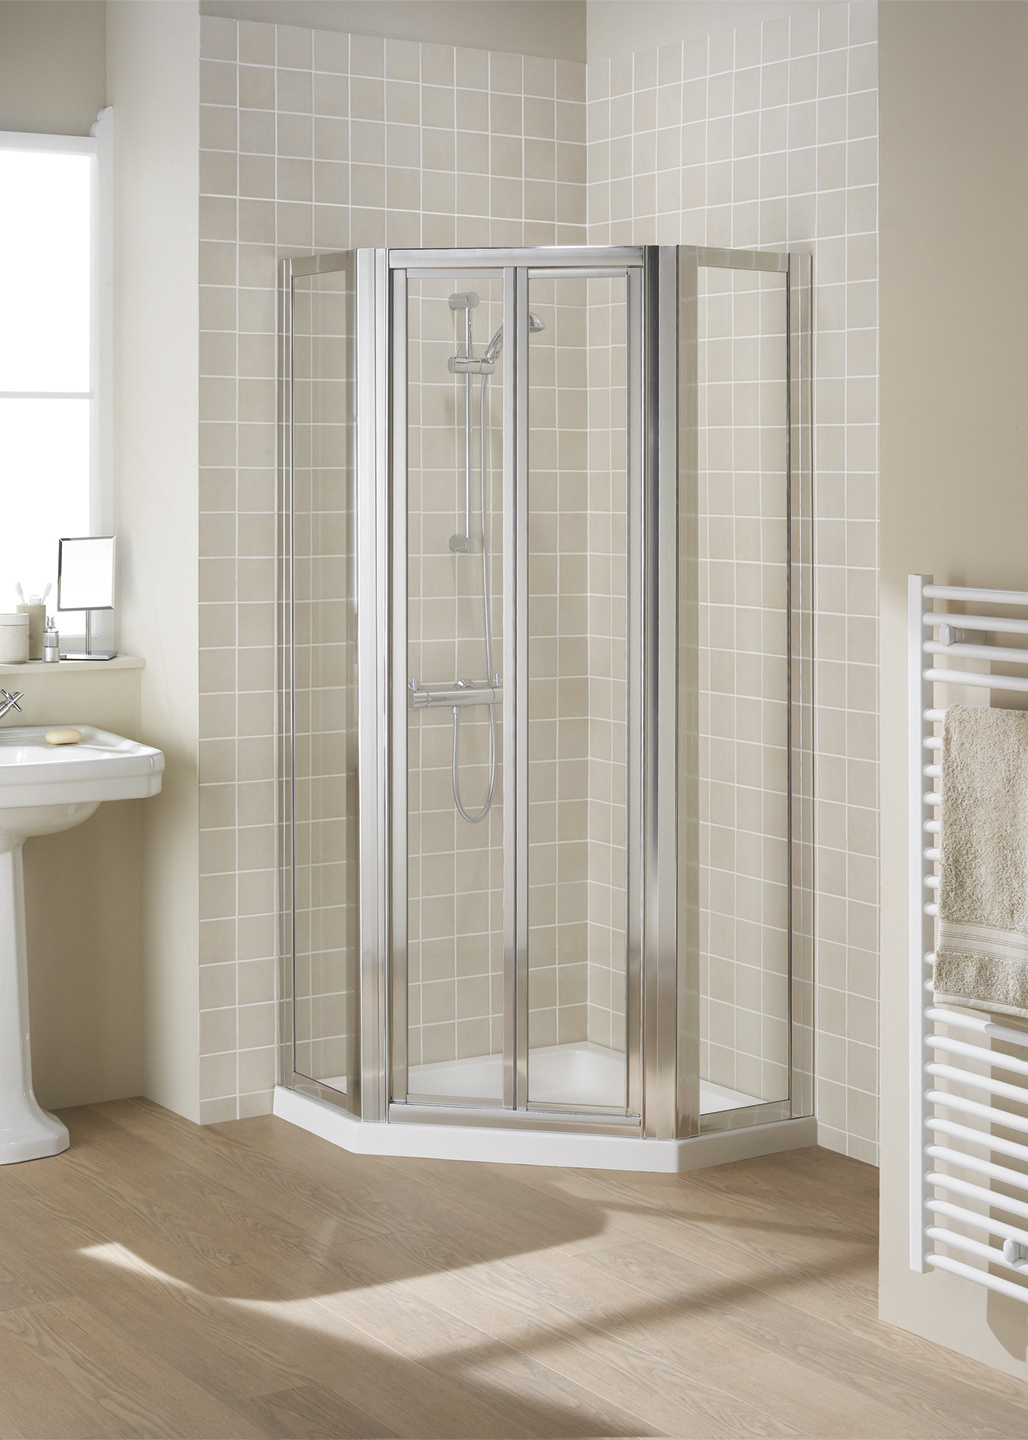 Pentagon fully framed shower enclosure